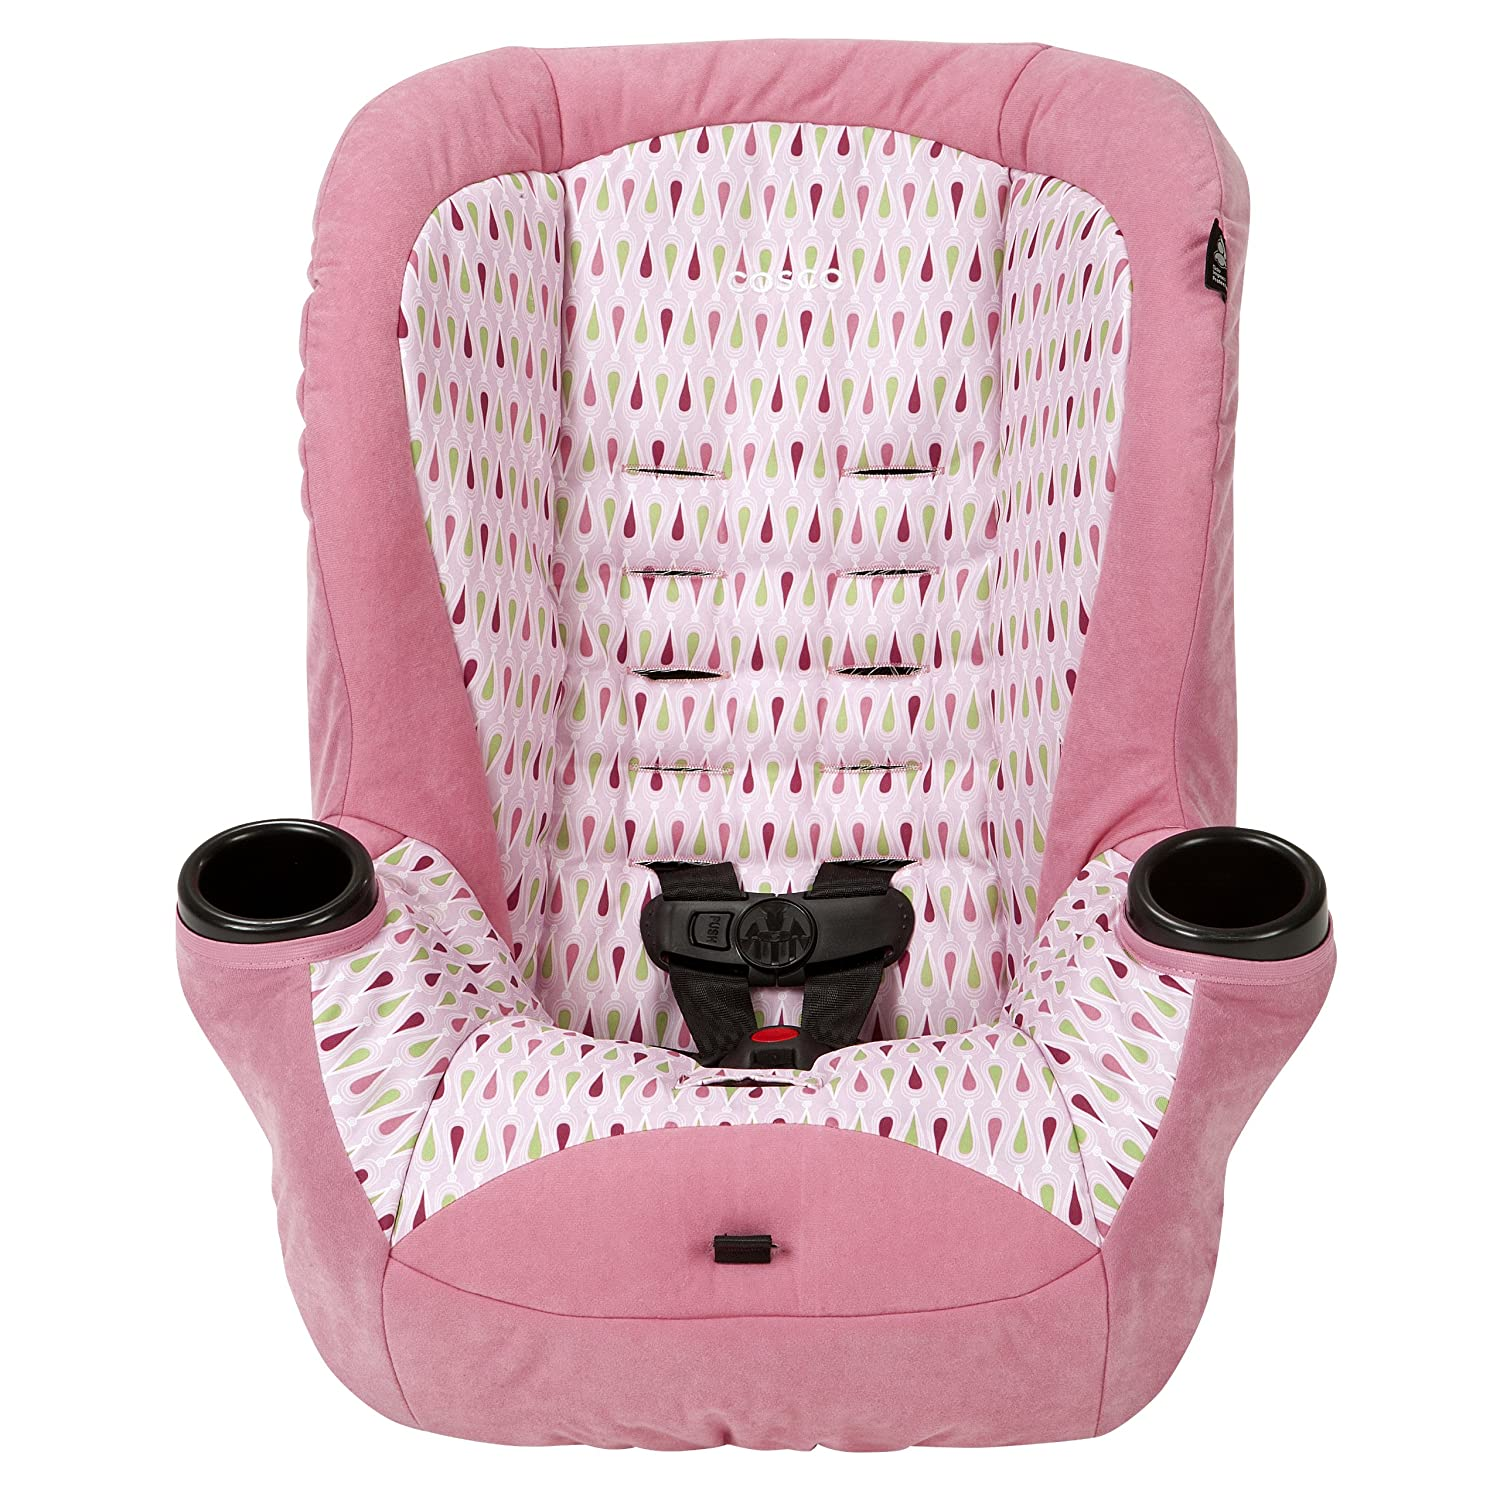 Amazon.com : Cosco Apt 40 RF Convertible Car Seat, Teardrop ...